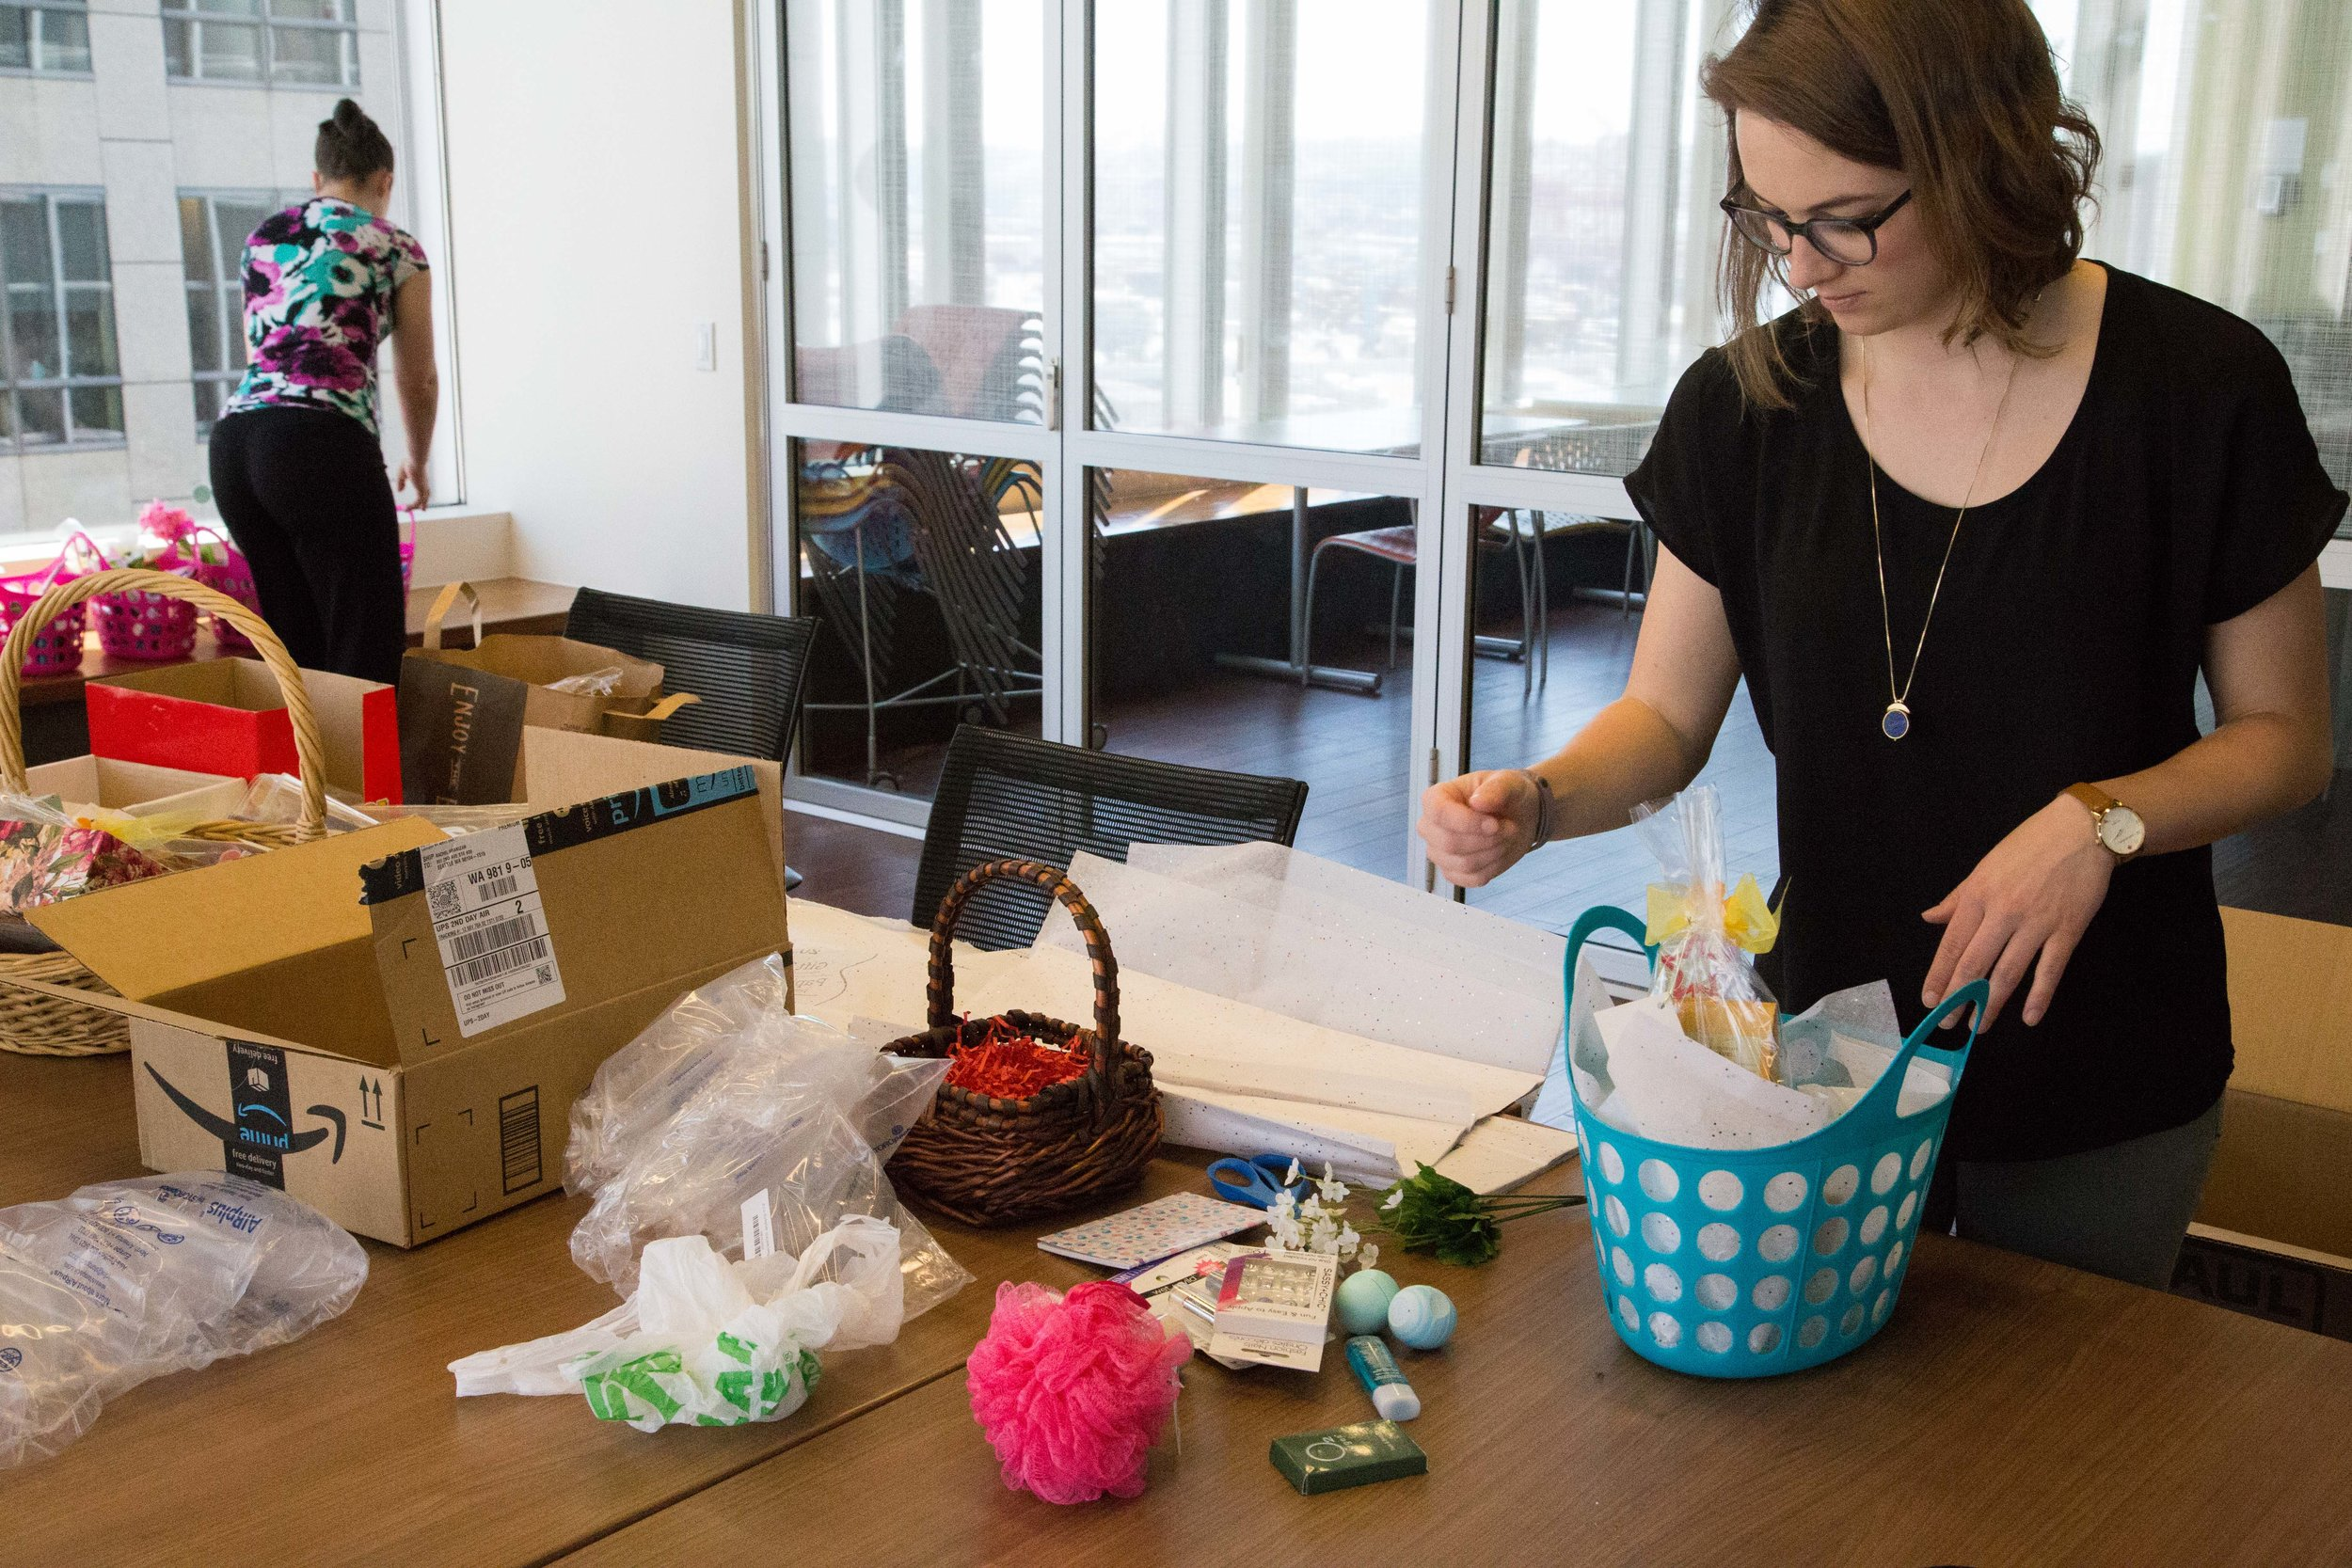 CoughlinPorterLundeen-Mother's-Day-Gift-Baskets-Assembly-YWCA.jpg